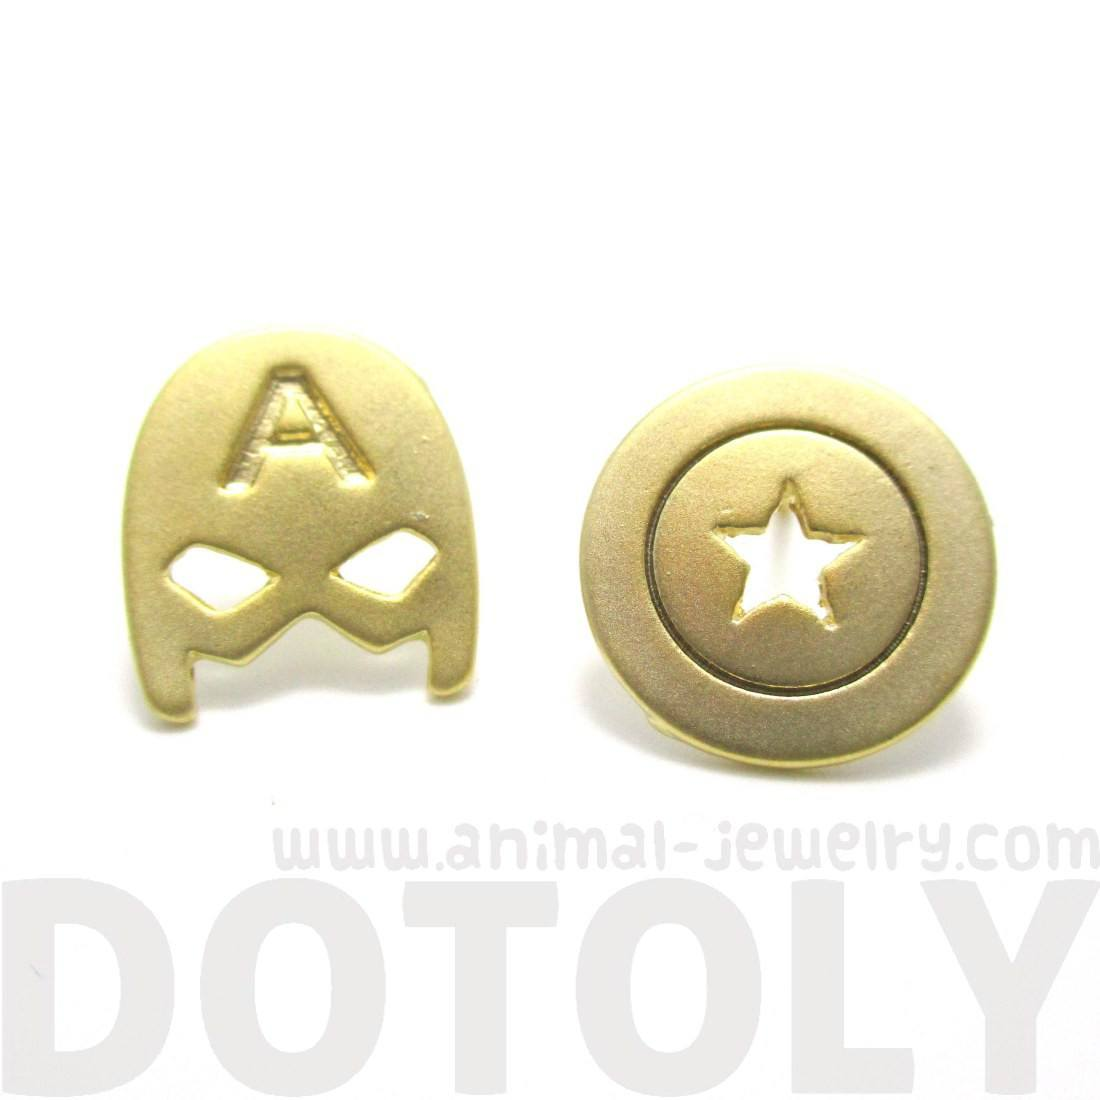 Captain America Mask and Shield Shaped Stud Earrings in Gold